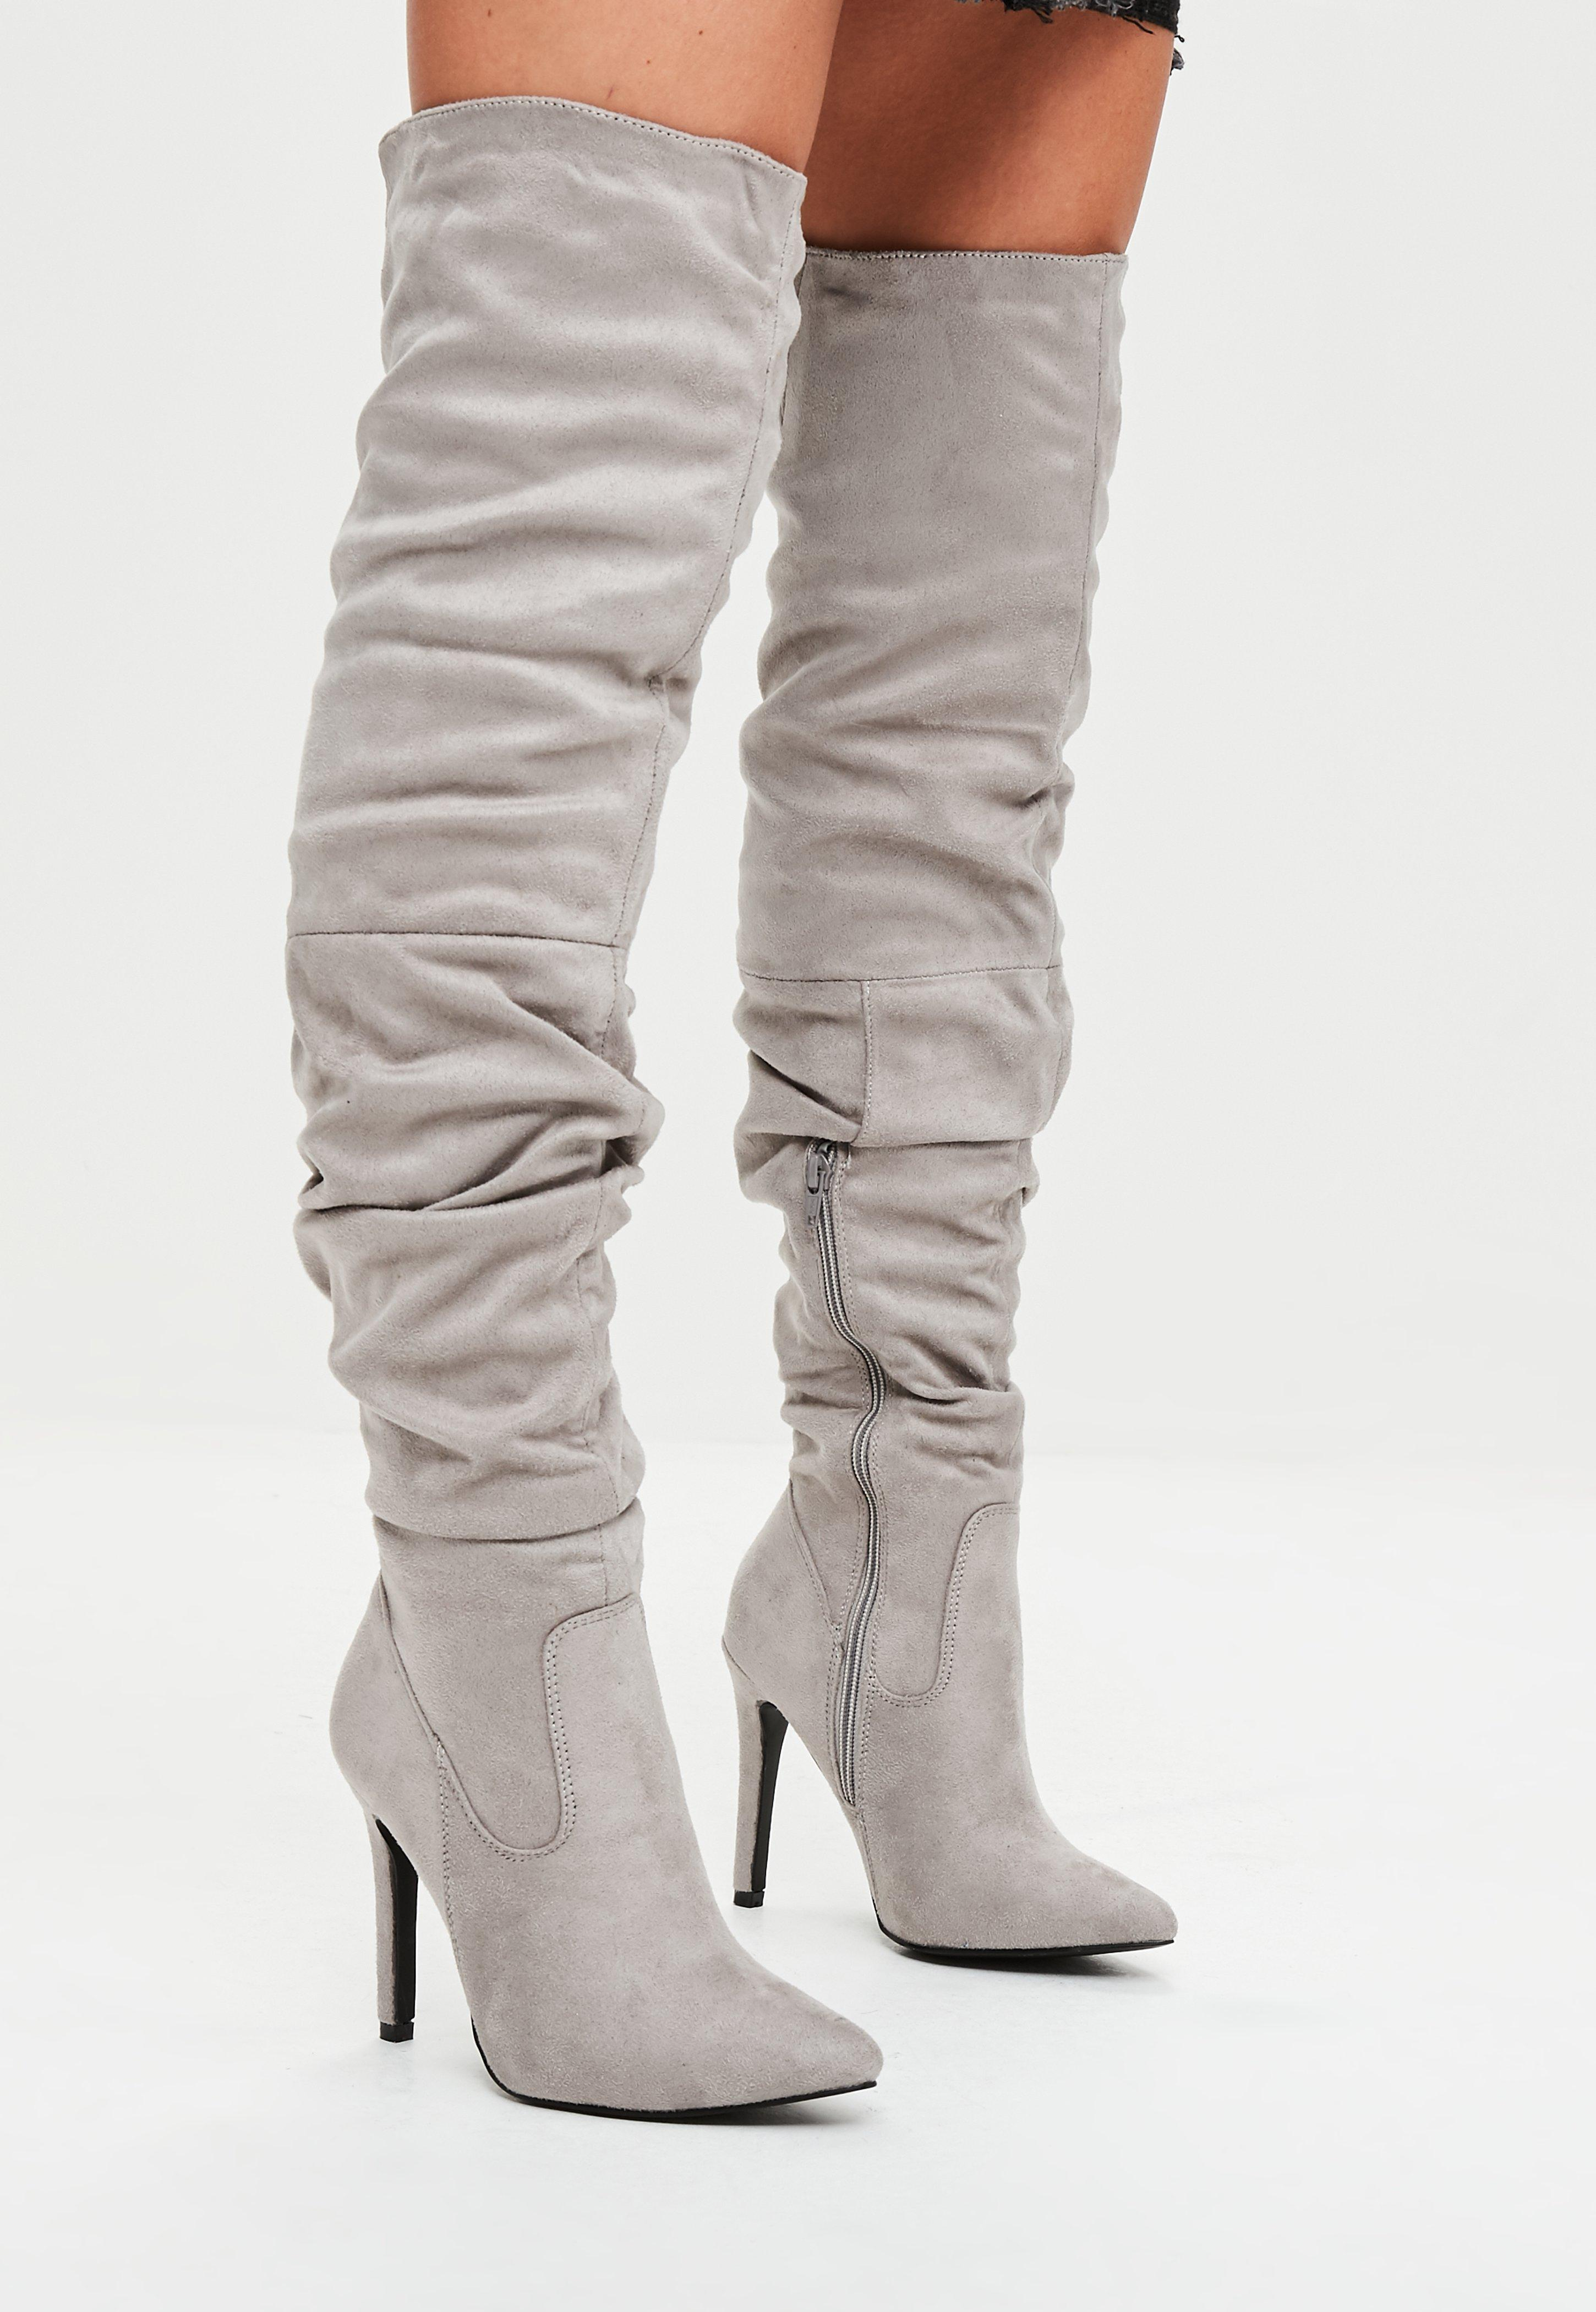 d6c5dc928d6 Missguided Grey Faux Suede Over The Knee Ruched Boots in Gray - Lyst